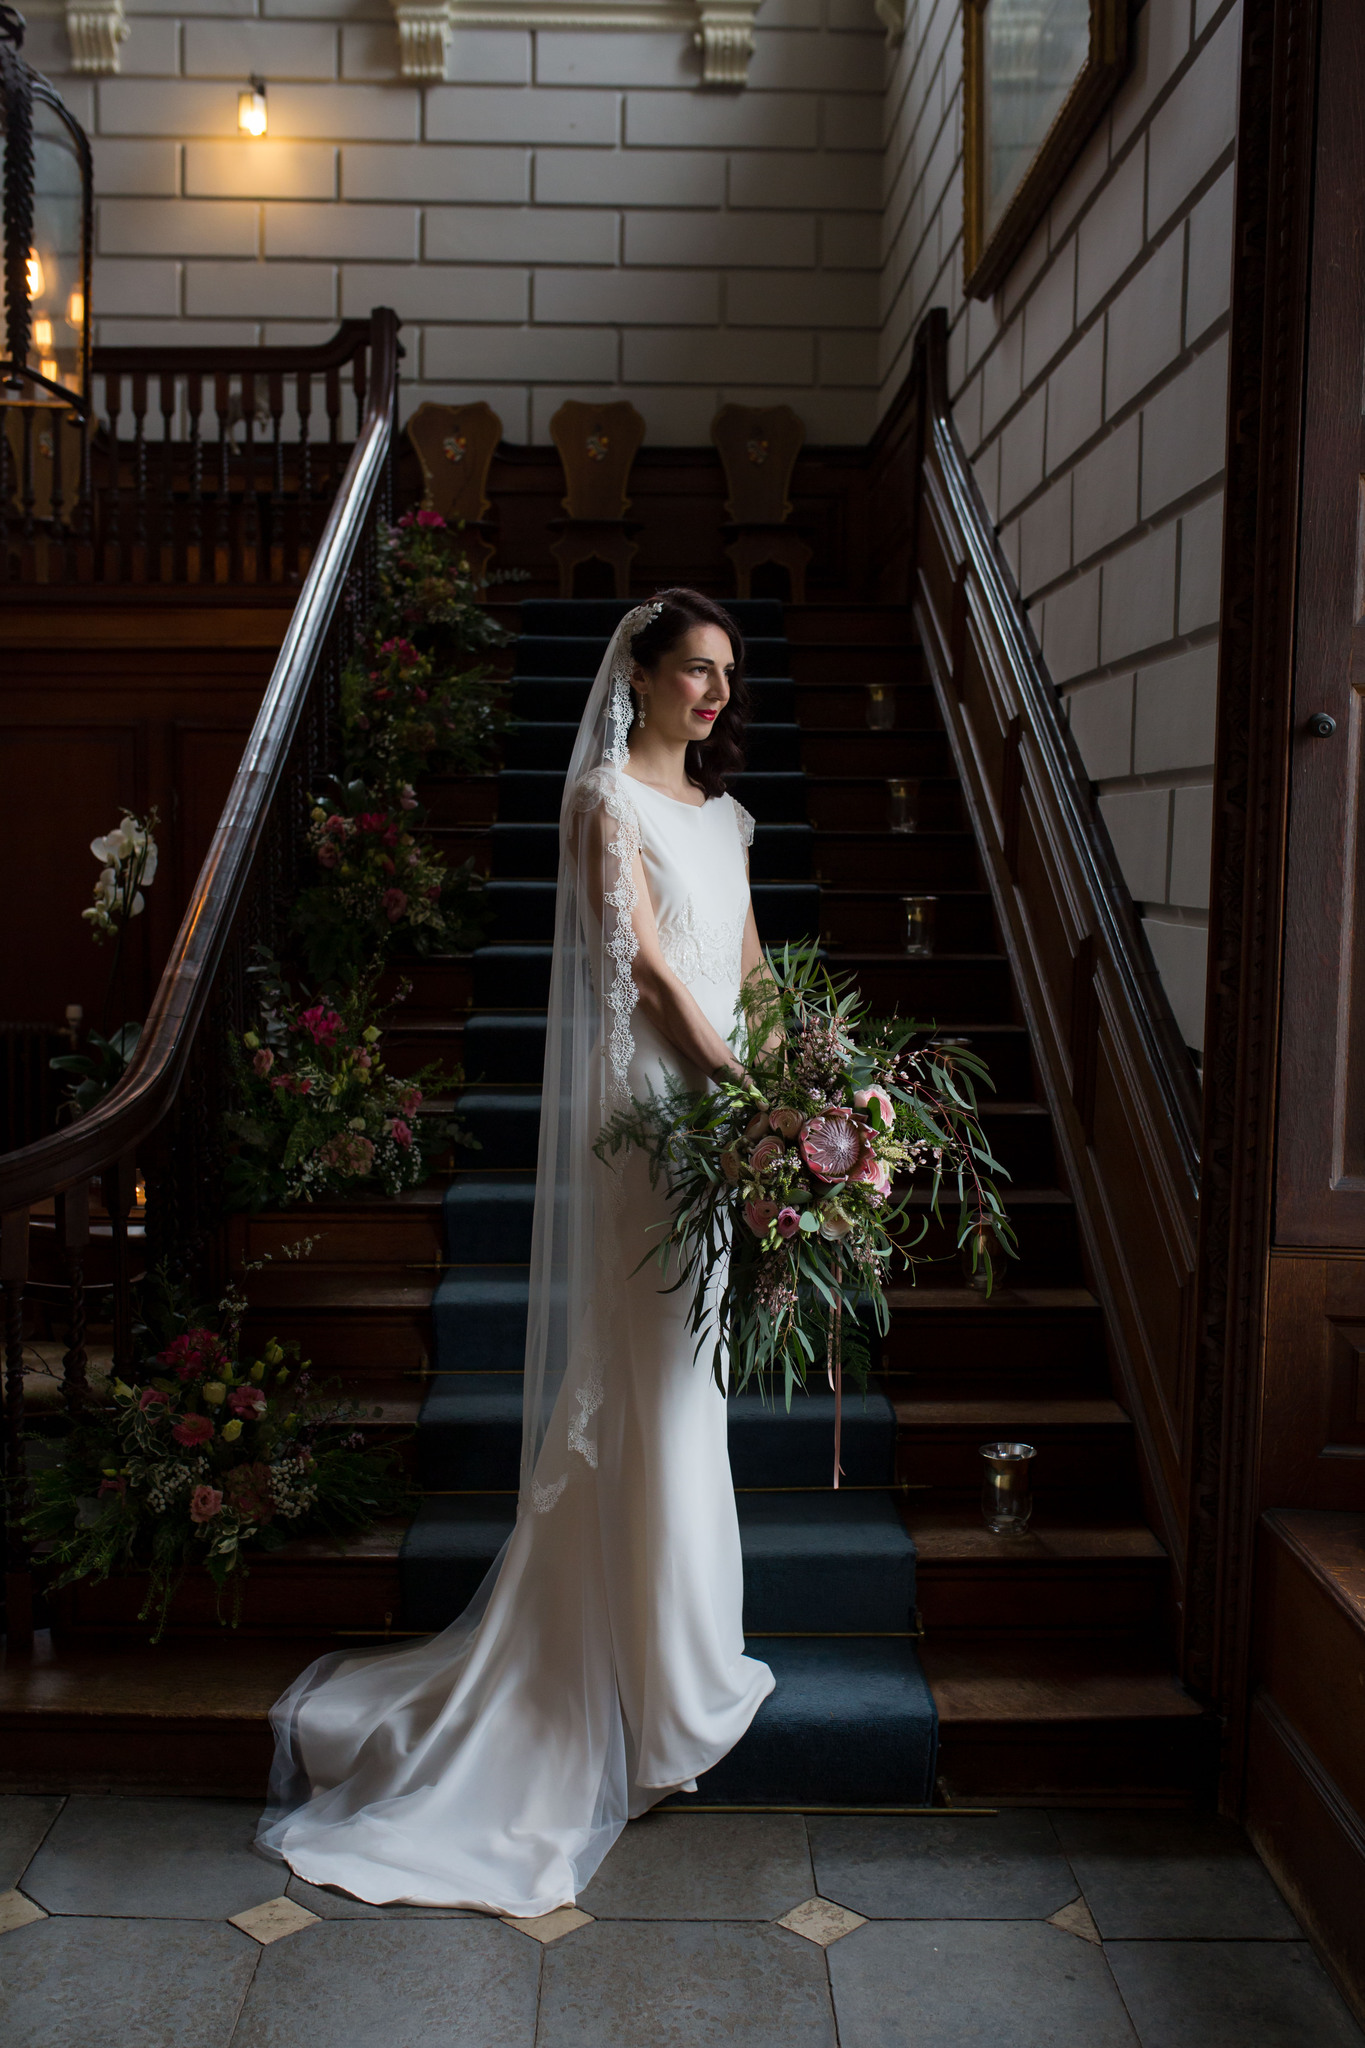 Davenport House wedding bridal portrait